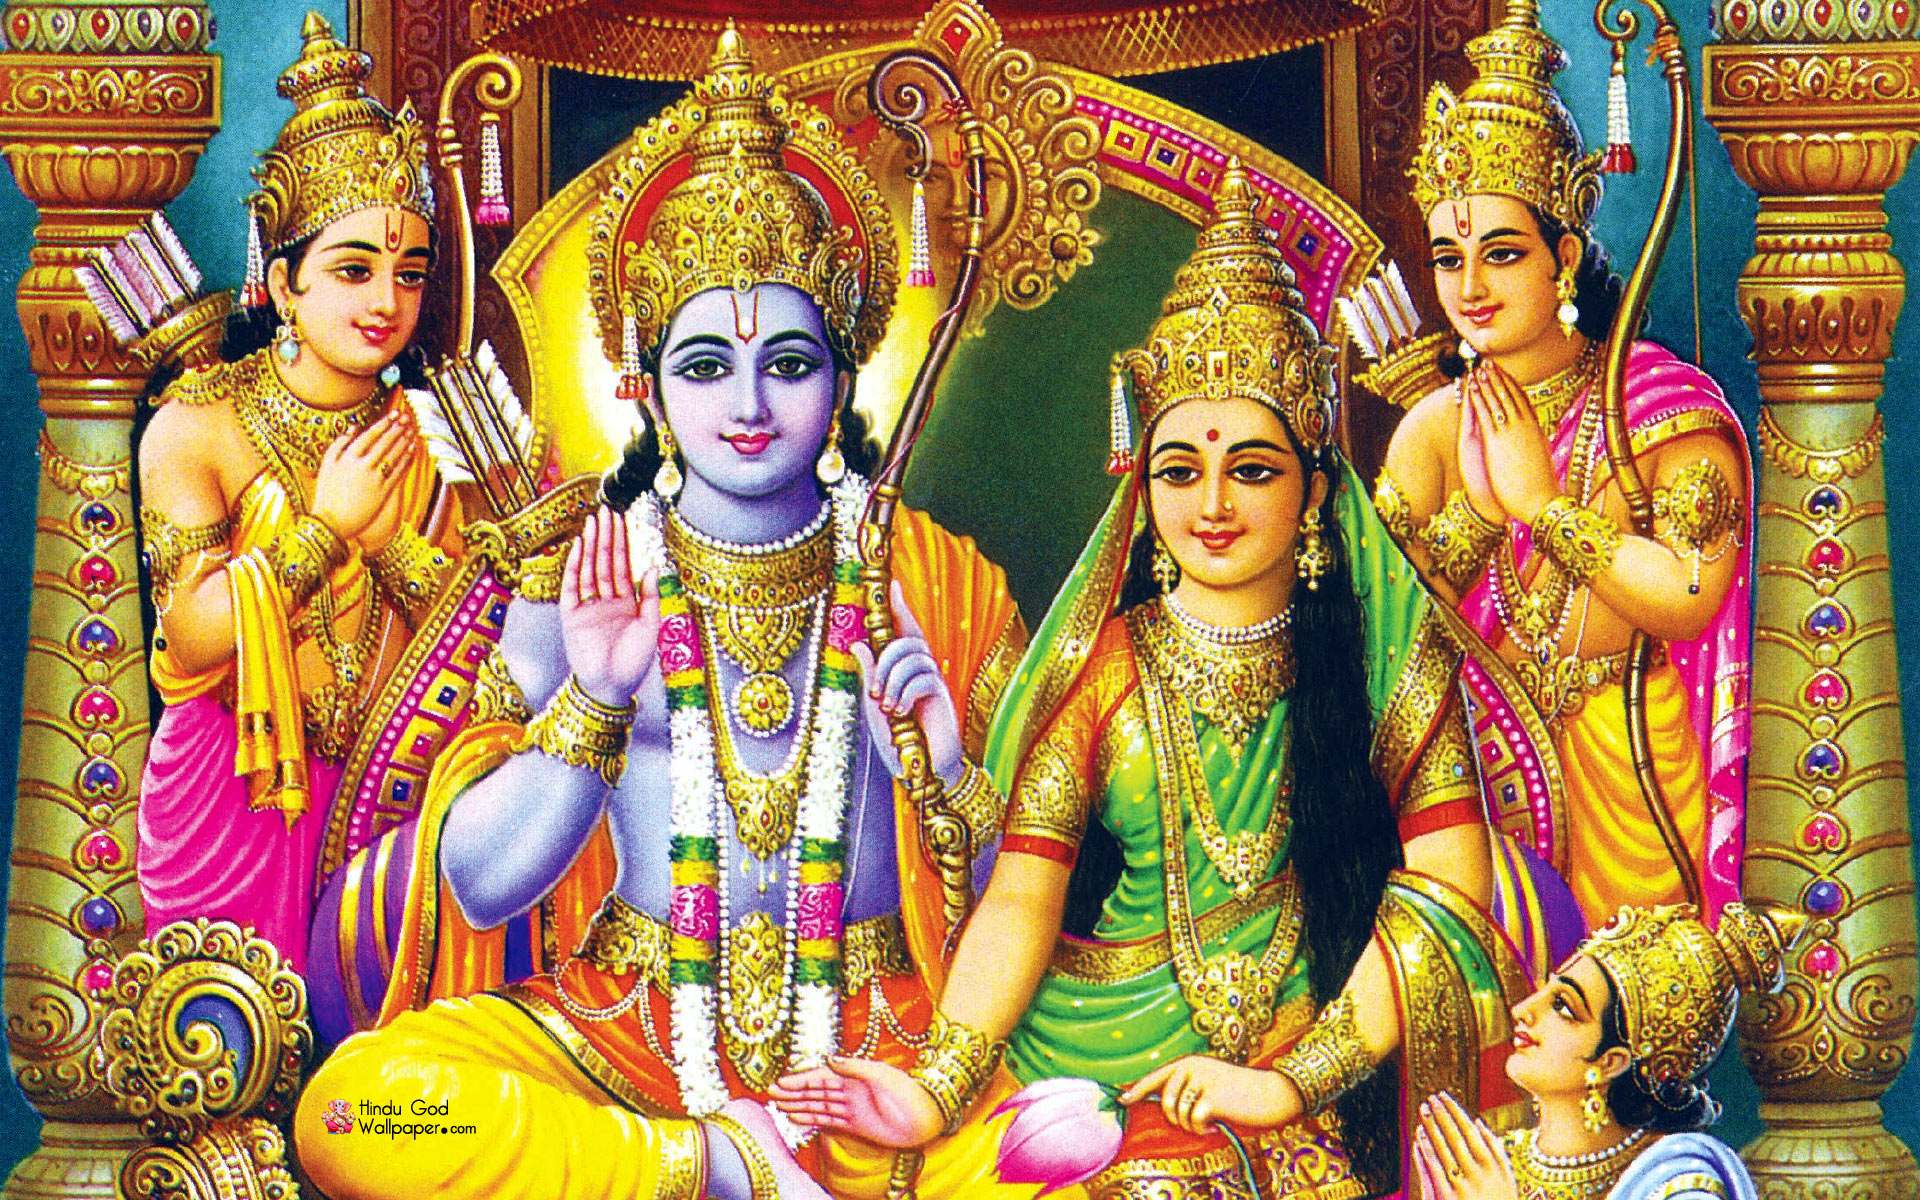 Lord Rama Hd Images For Mobile Desktop Wallpapers Divineinfogurucom